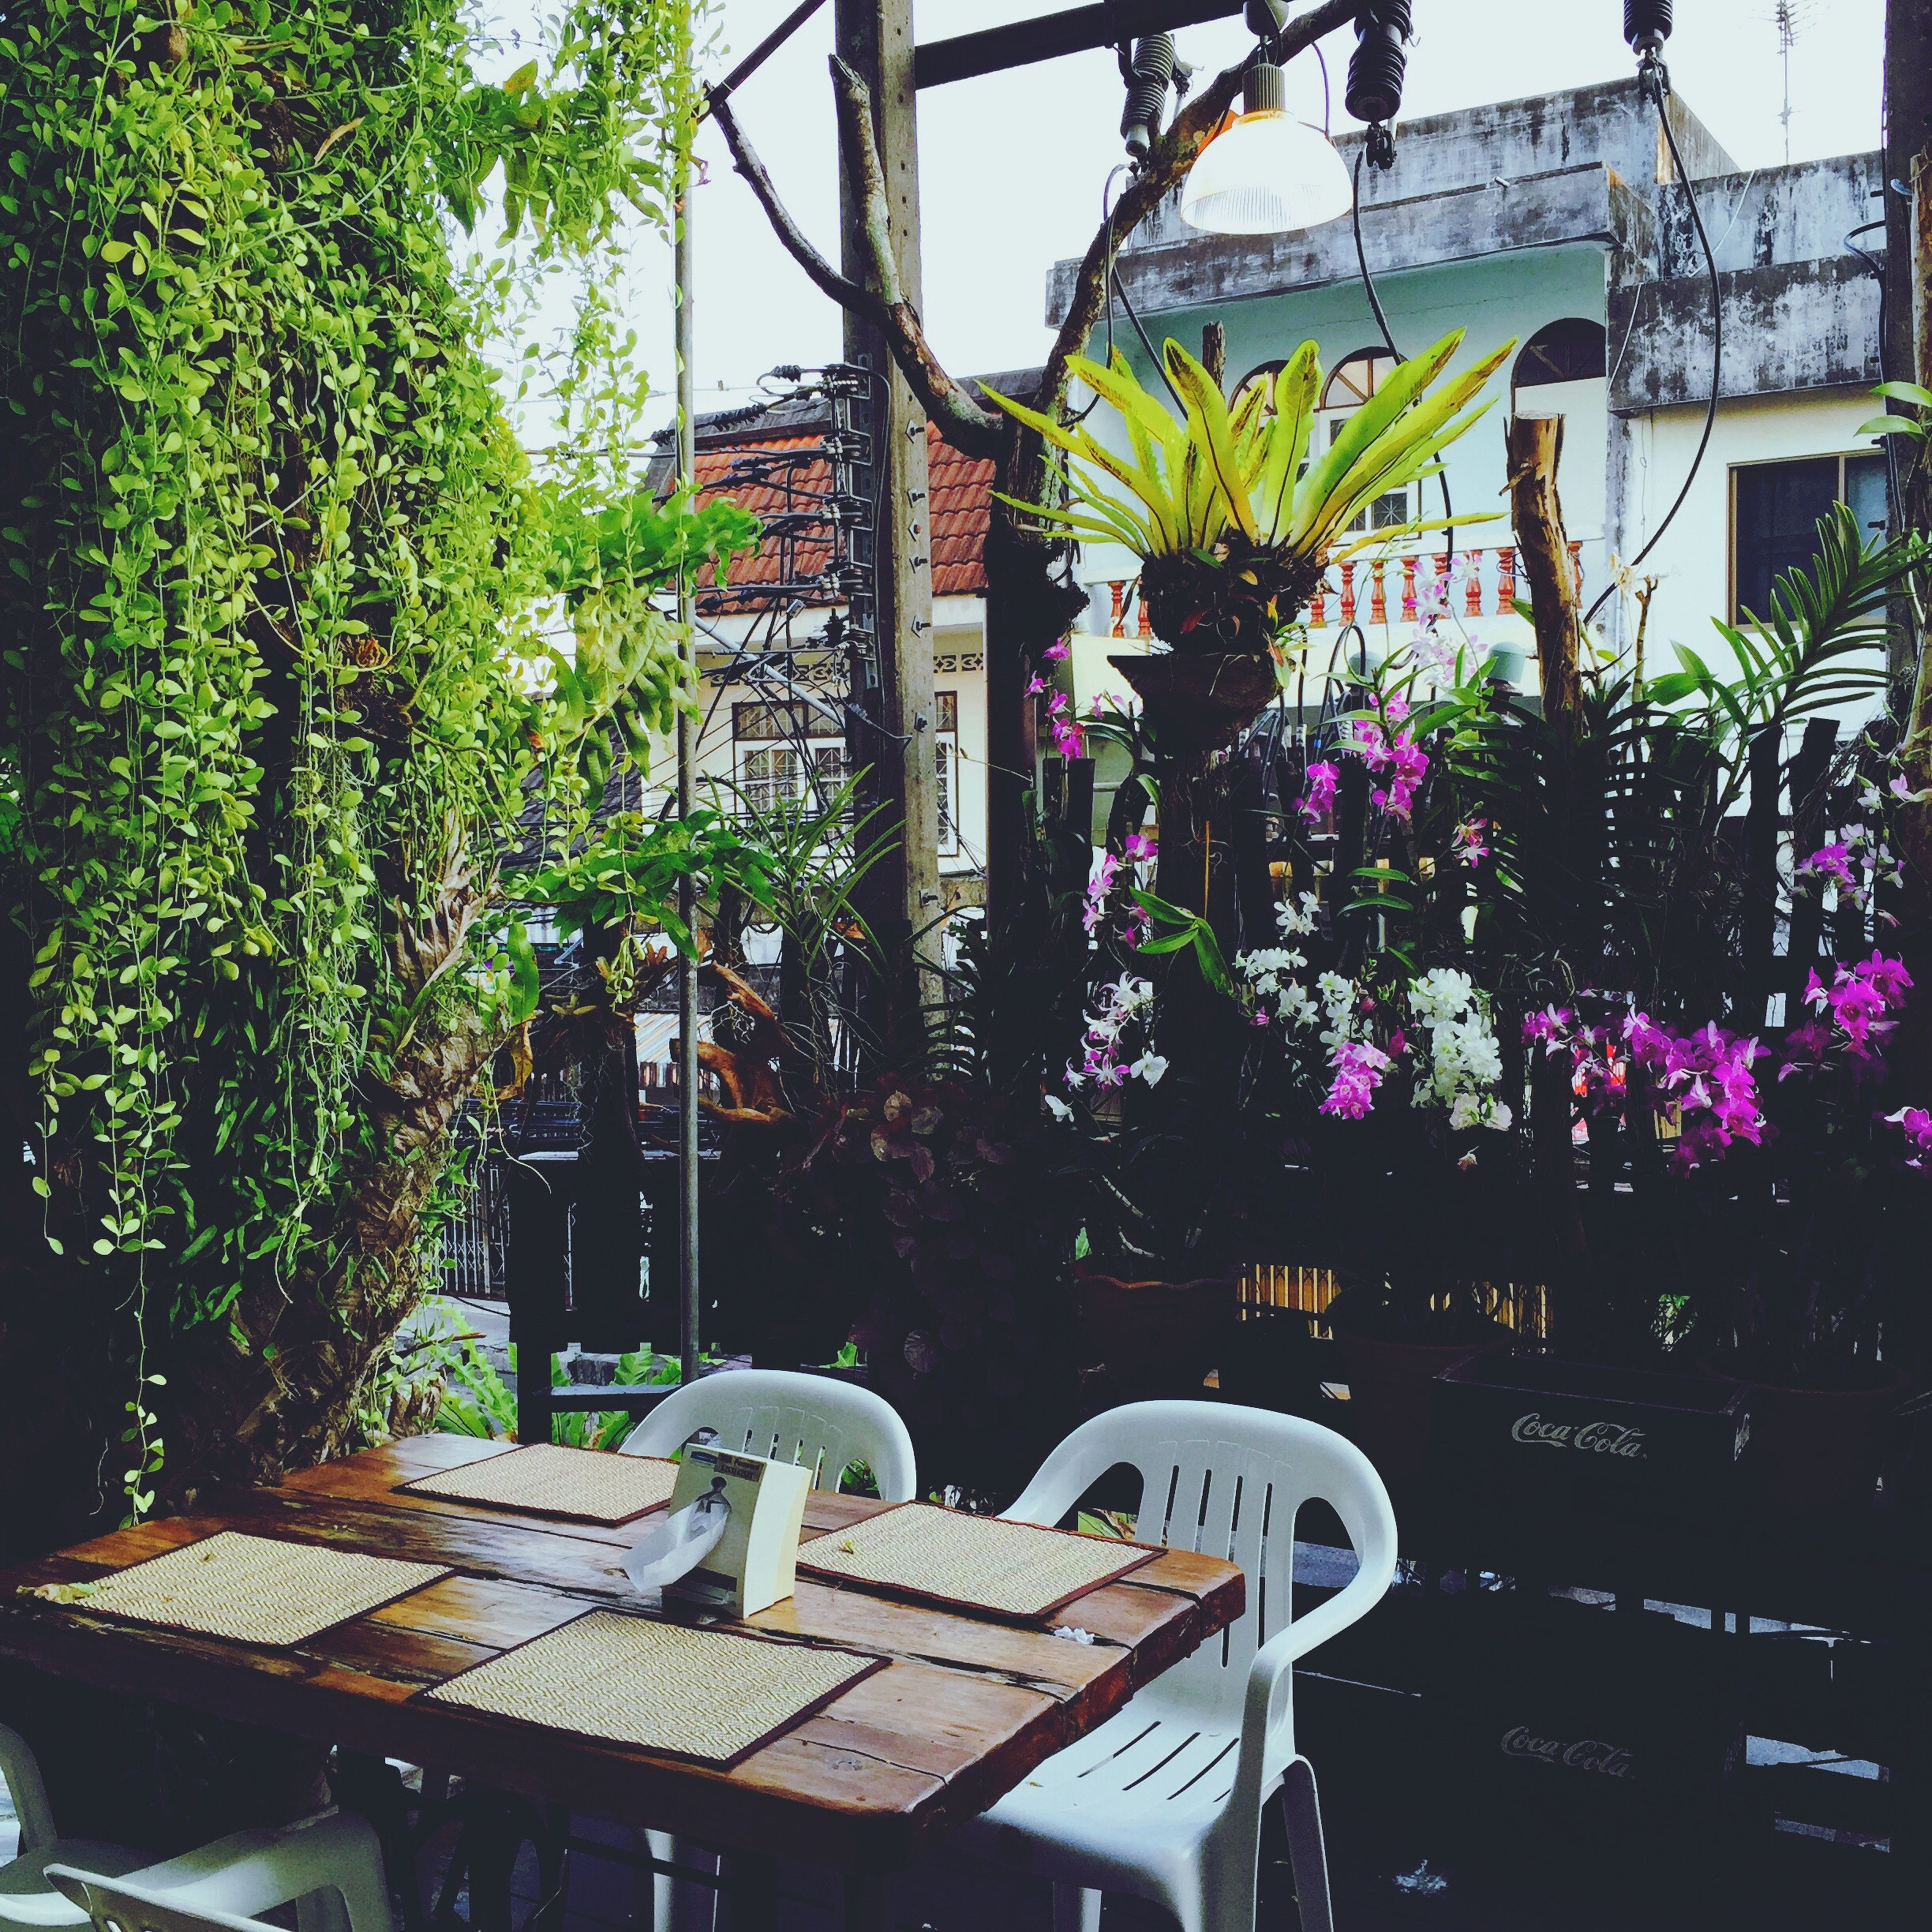 architecture, built structure, building exterior, house, potted plant, tree, plant, residential structure, window, chair, residential building, growth, day, no people, balcony, sunlight, front or back yard, roof, outdoors, building